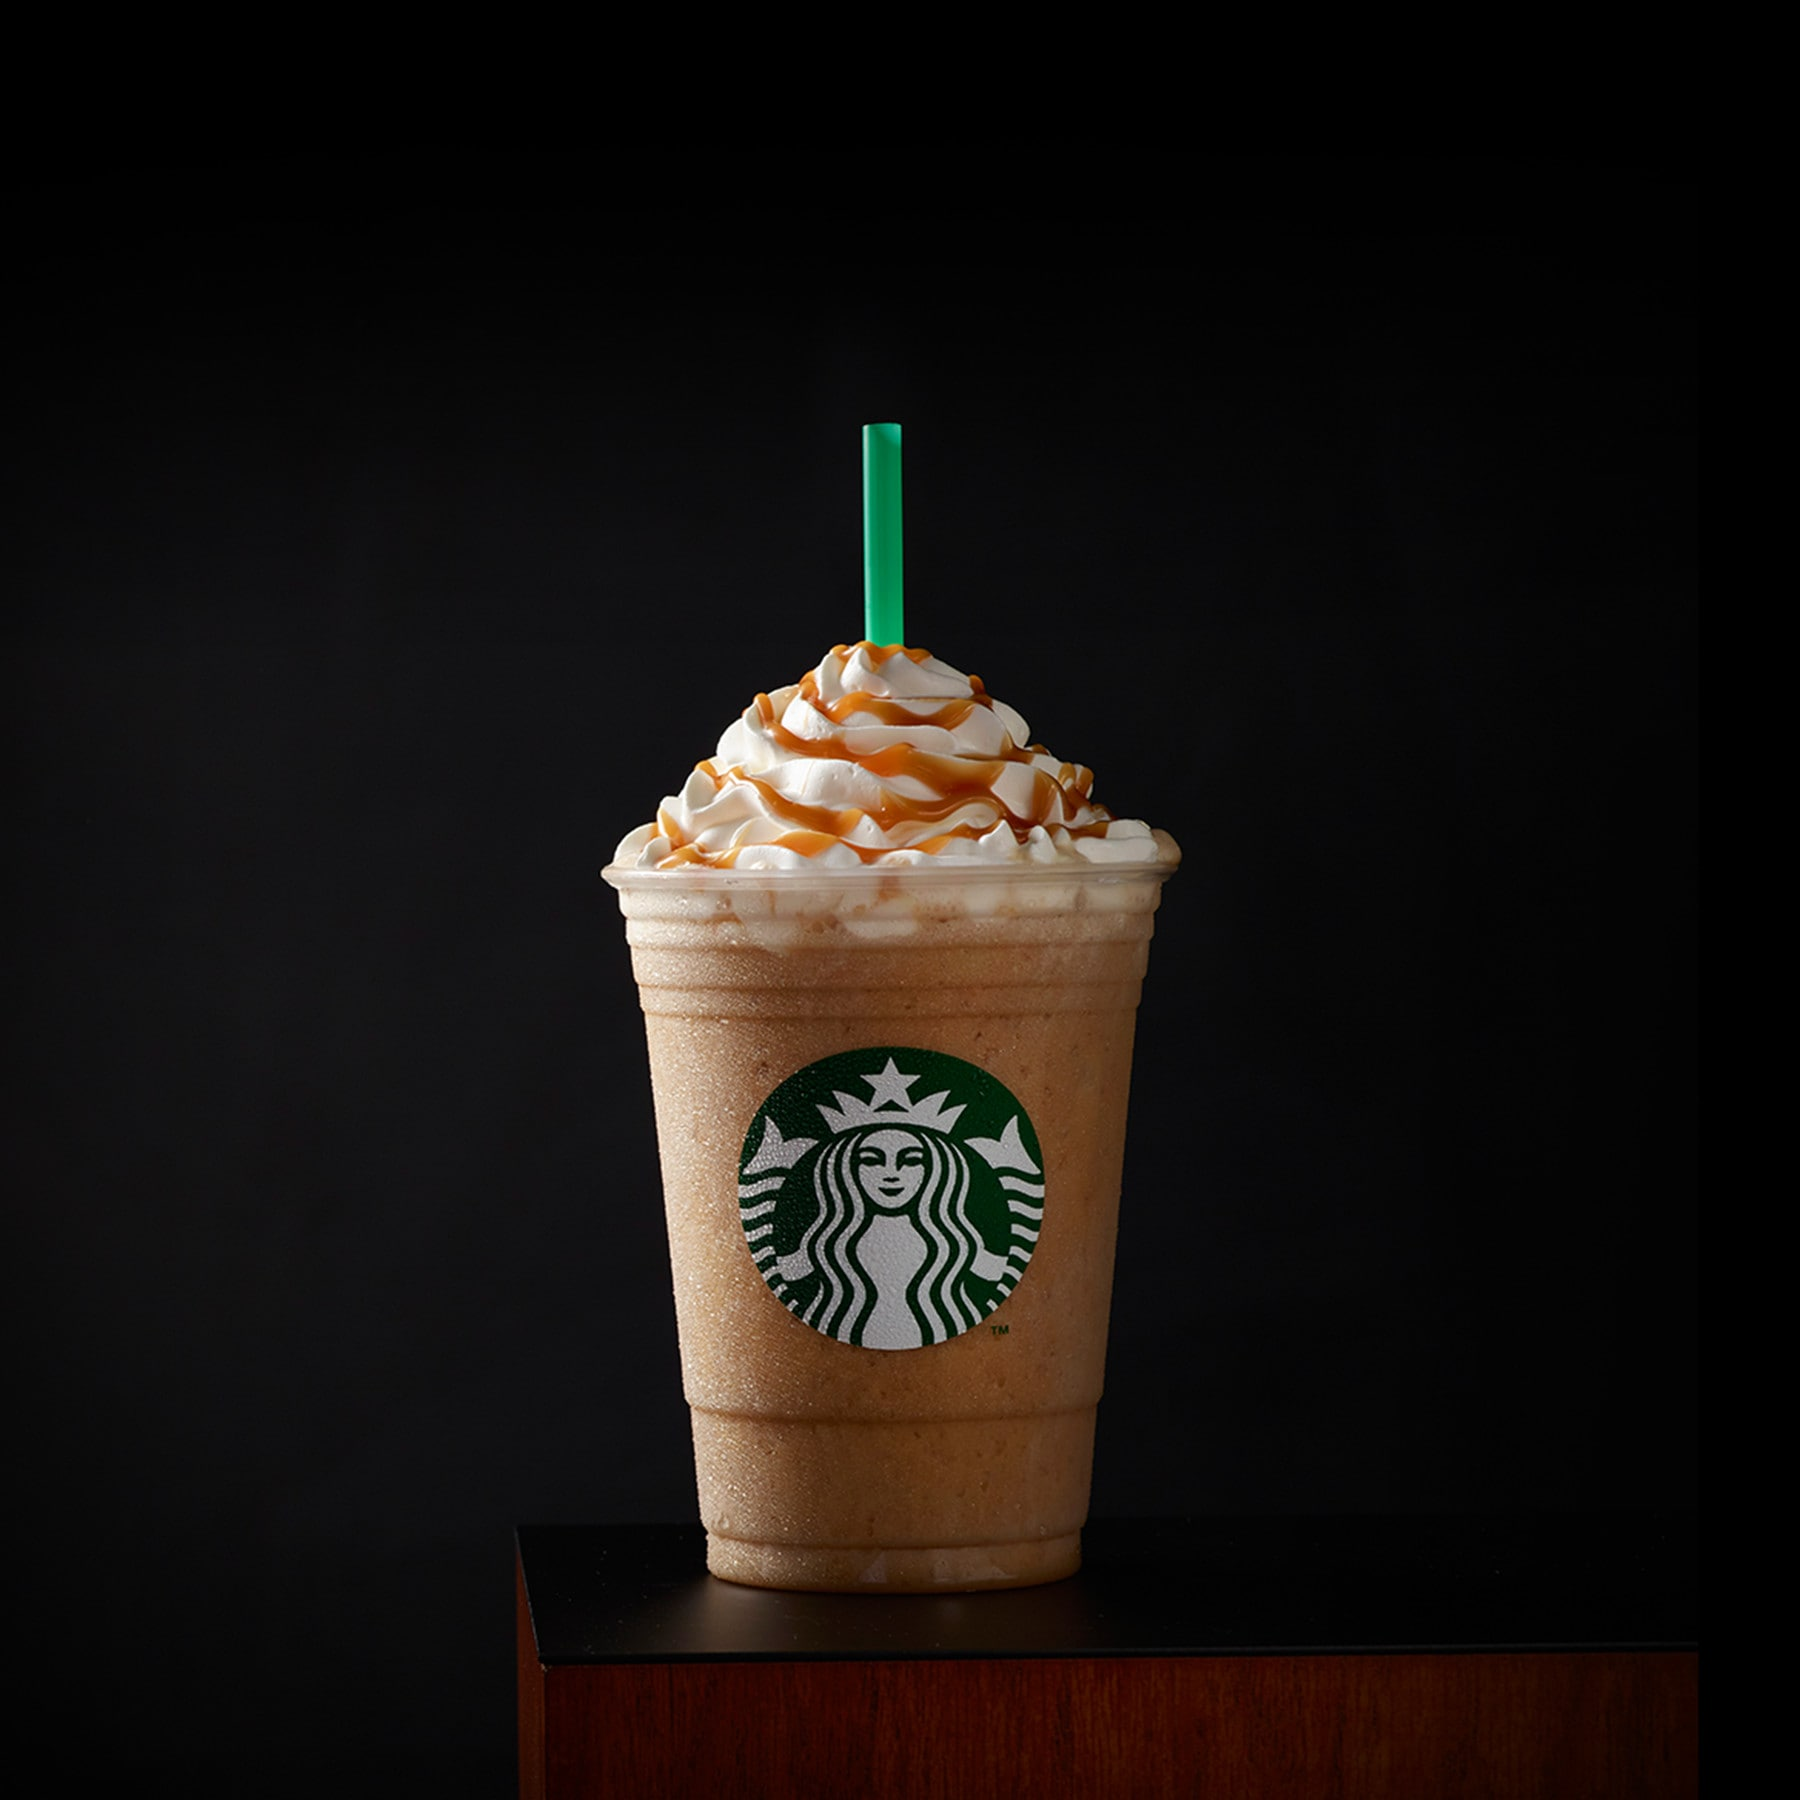 caramel frappuccino® blended coffee | starbucks coffee company